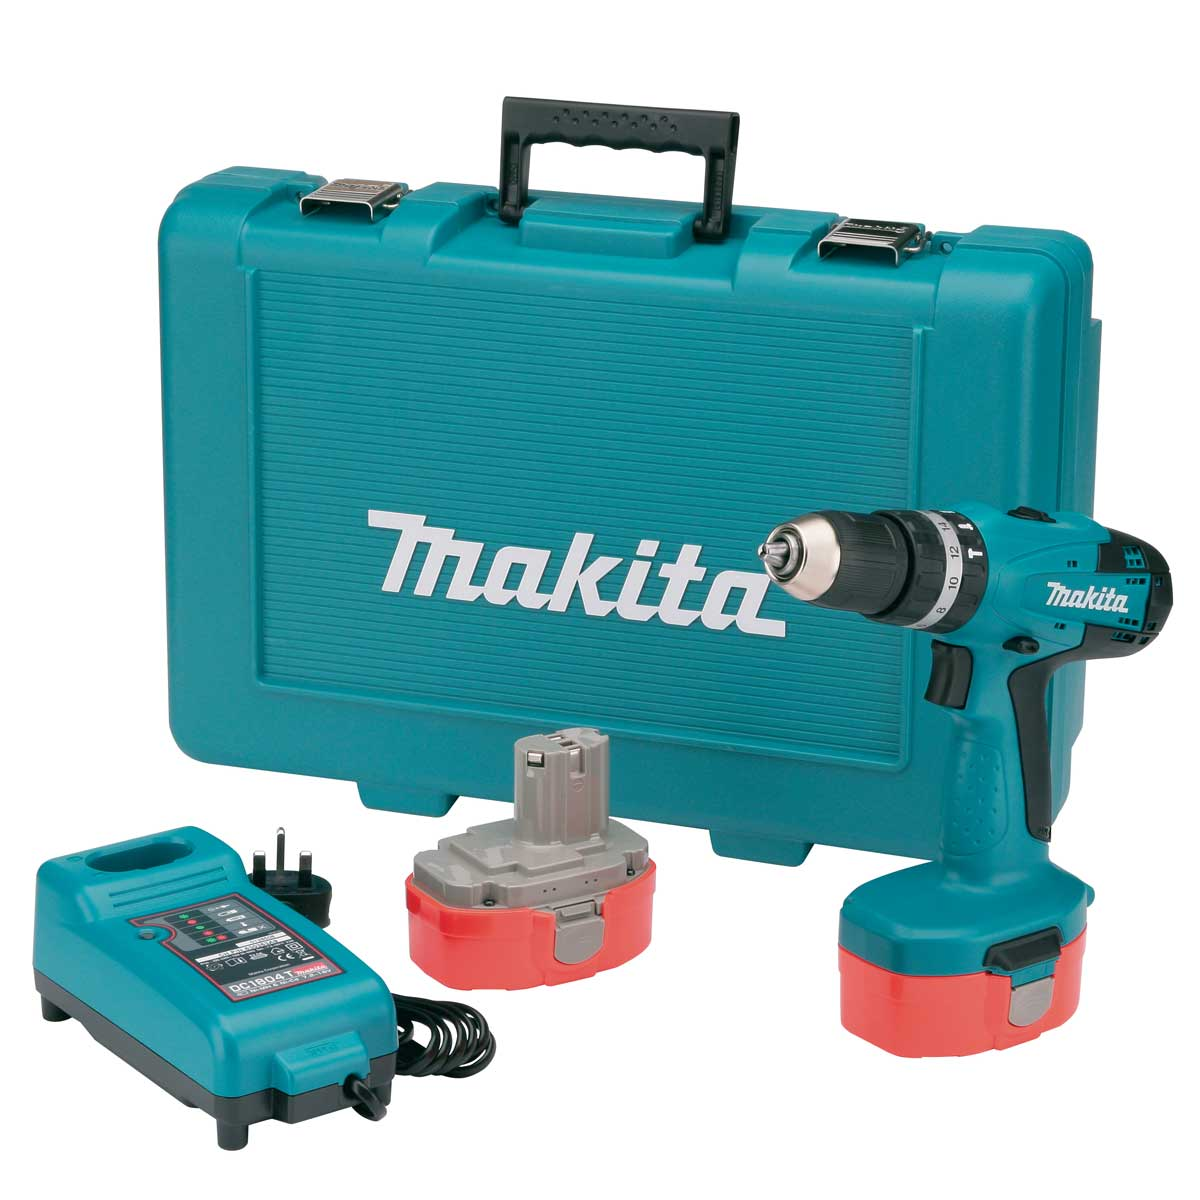 Makita Accuboor Set Rebuilding Makita Power Tool Battery Instructions